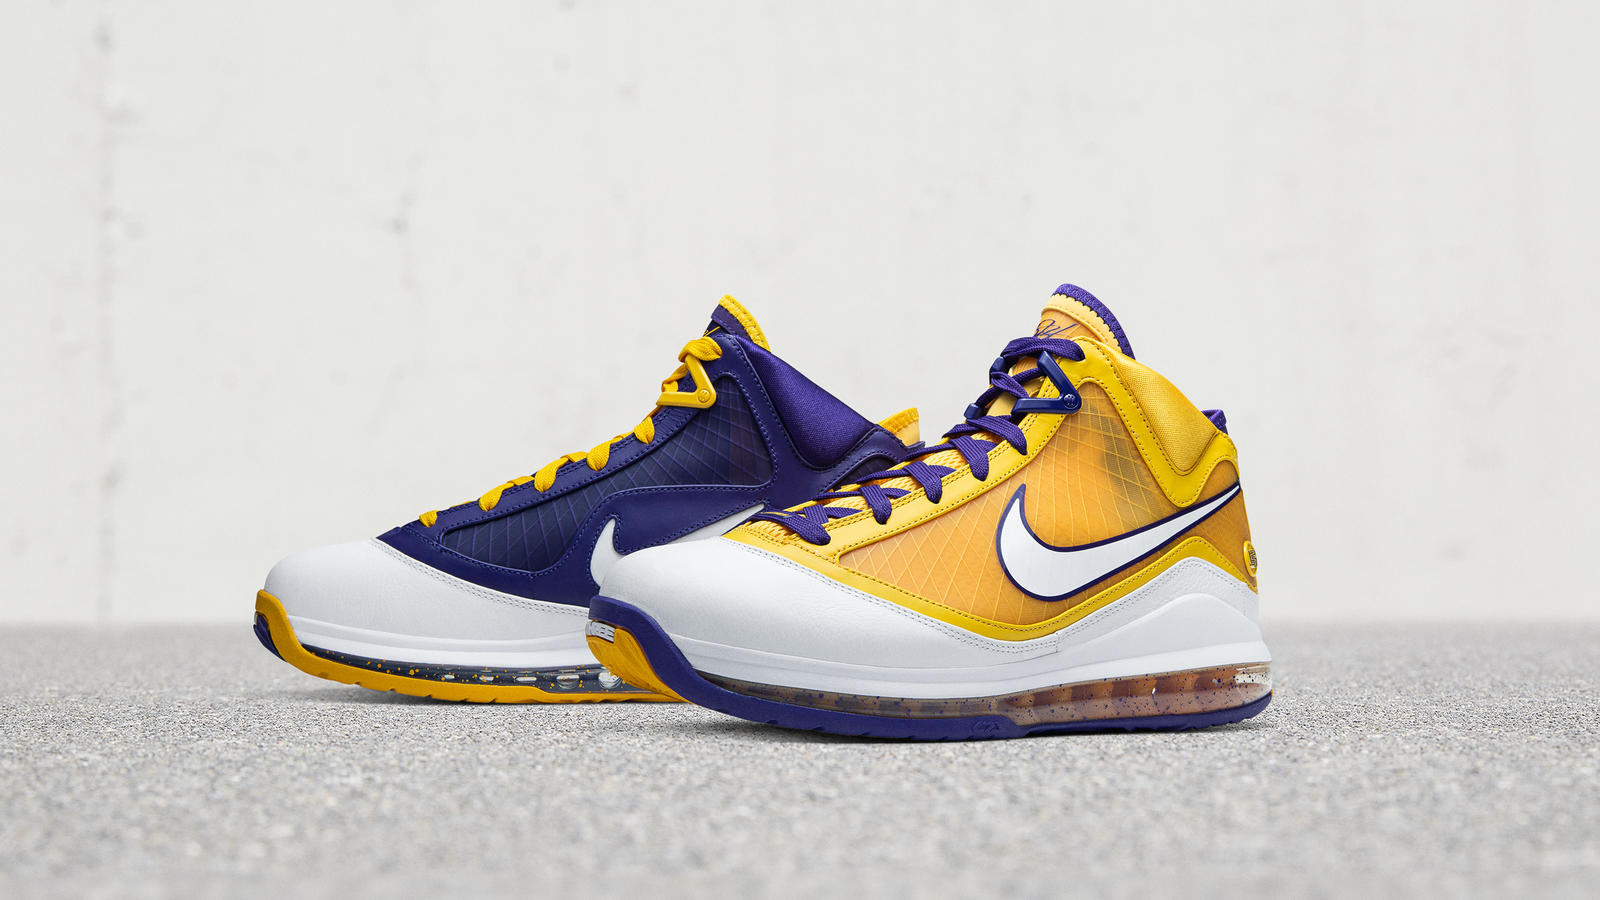 LEBRON 7 Media Day Official Images and